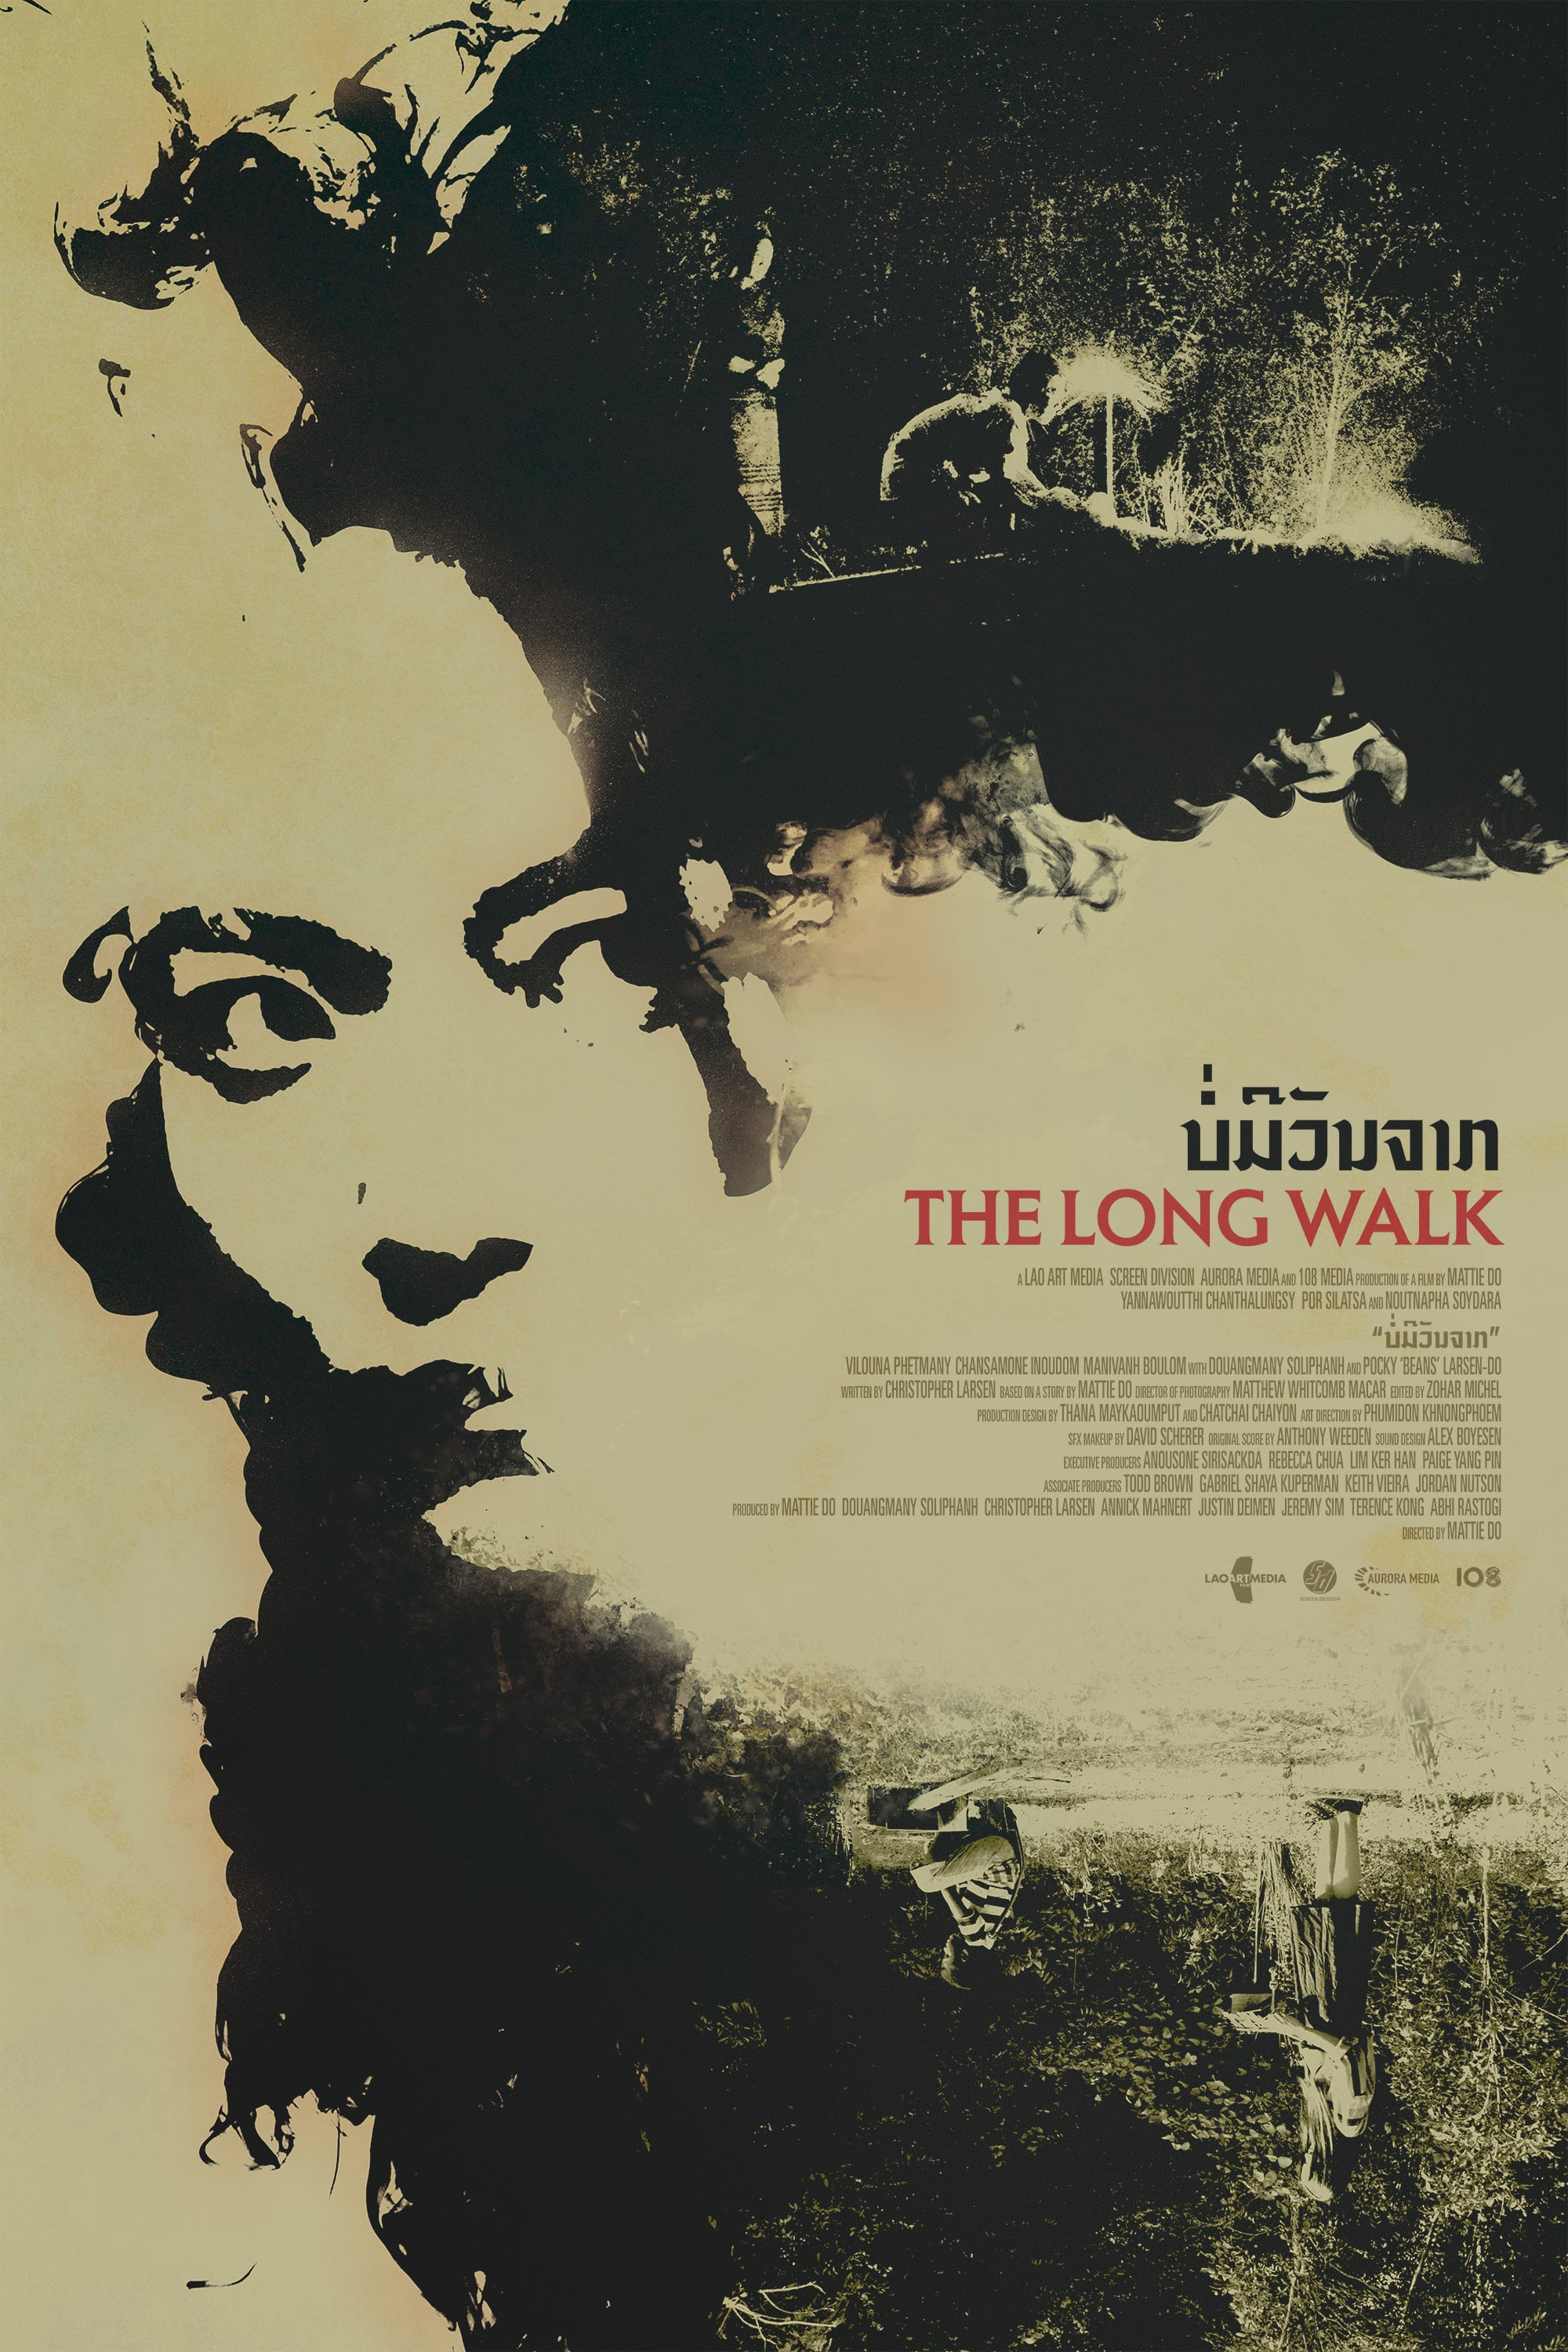 poster of the long walk by Mattie do (2019)